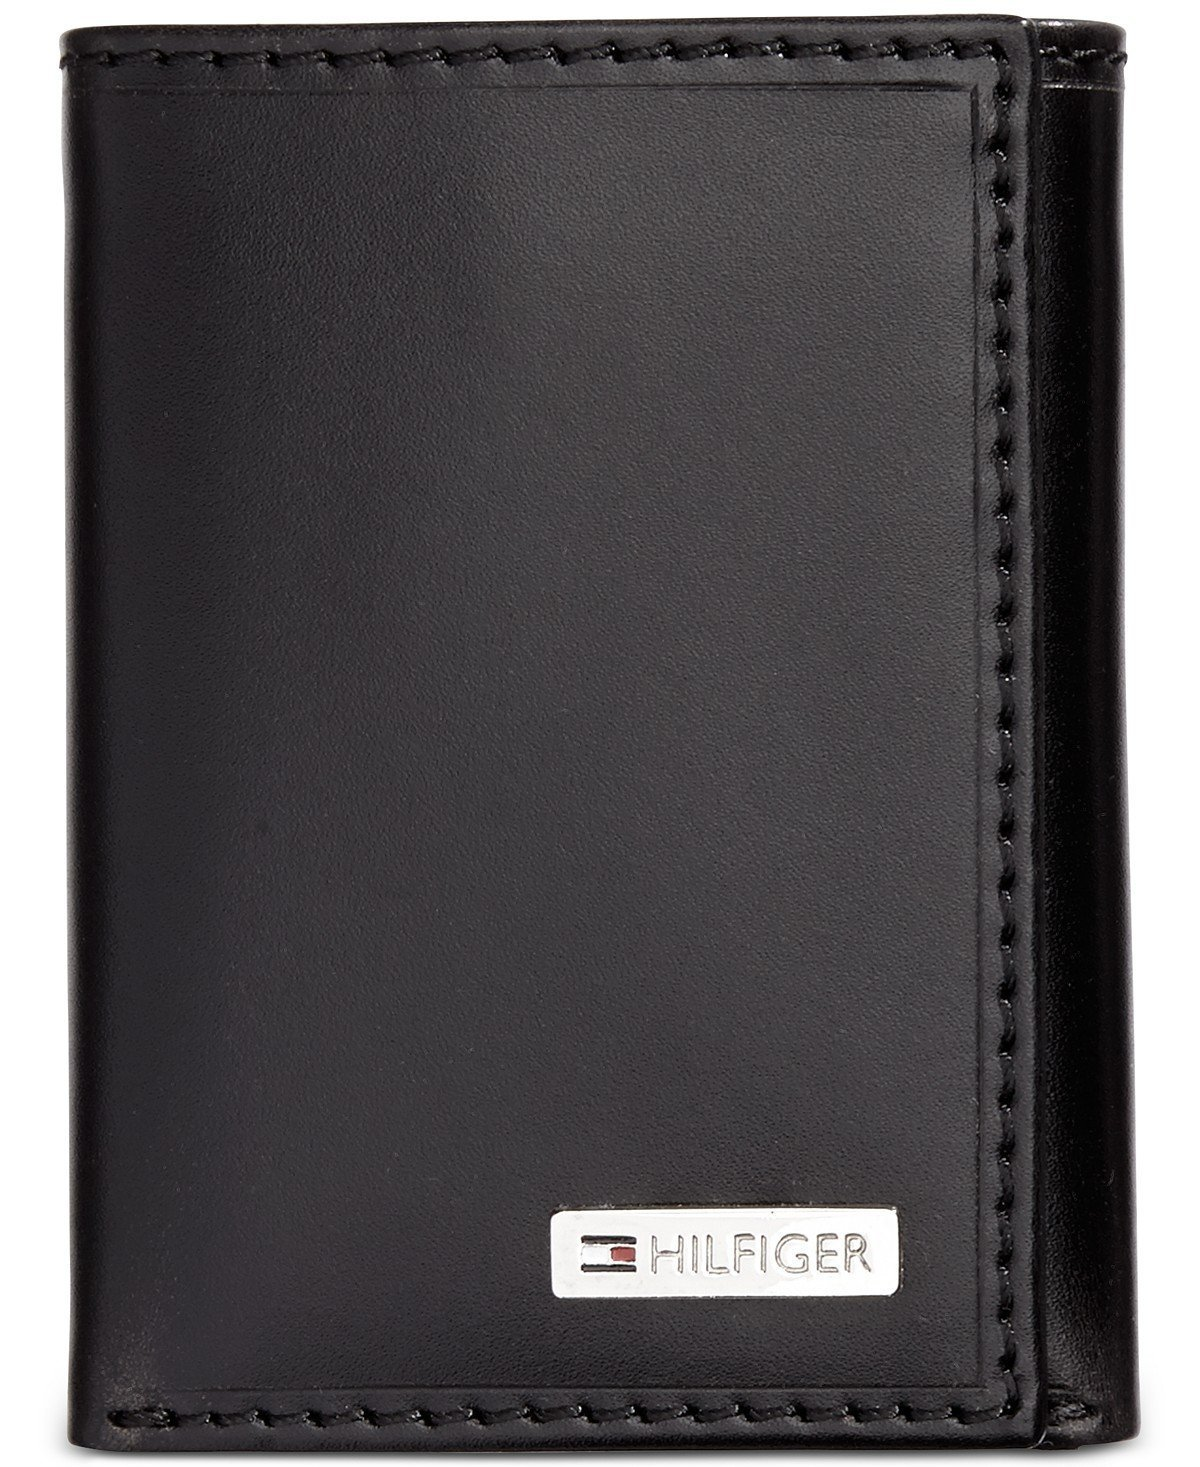 Tommy Hilfiger Men's Leather Credit Card Id Wallet Trifold Black 31TL110005